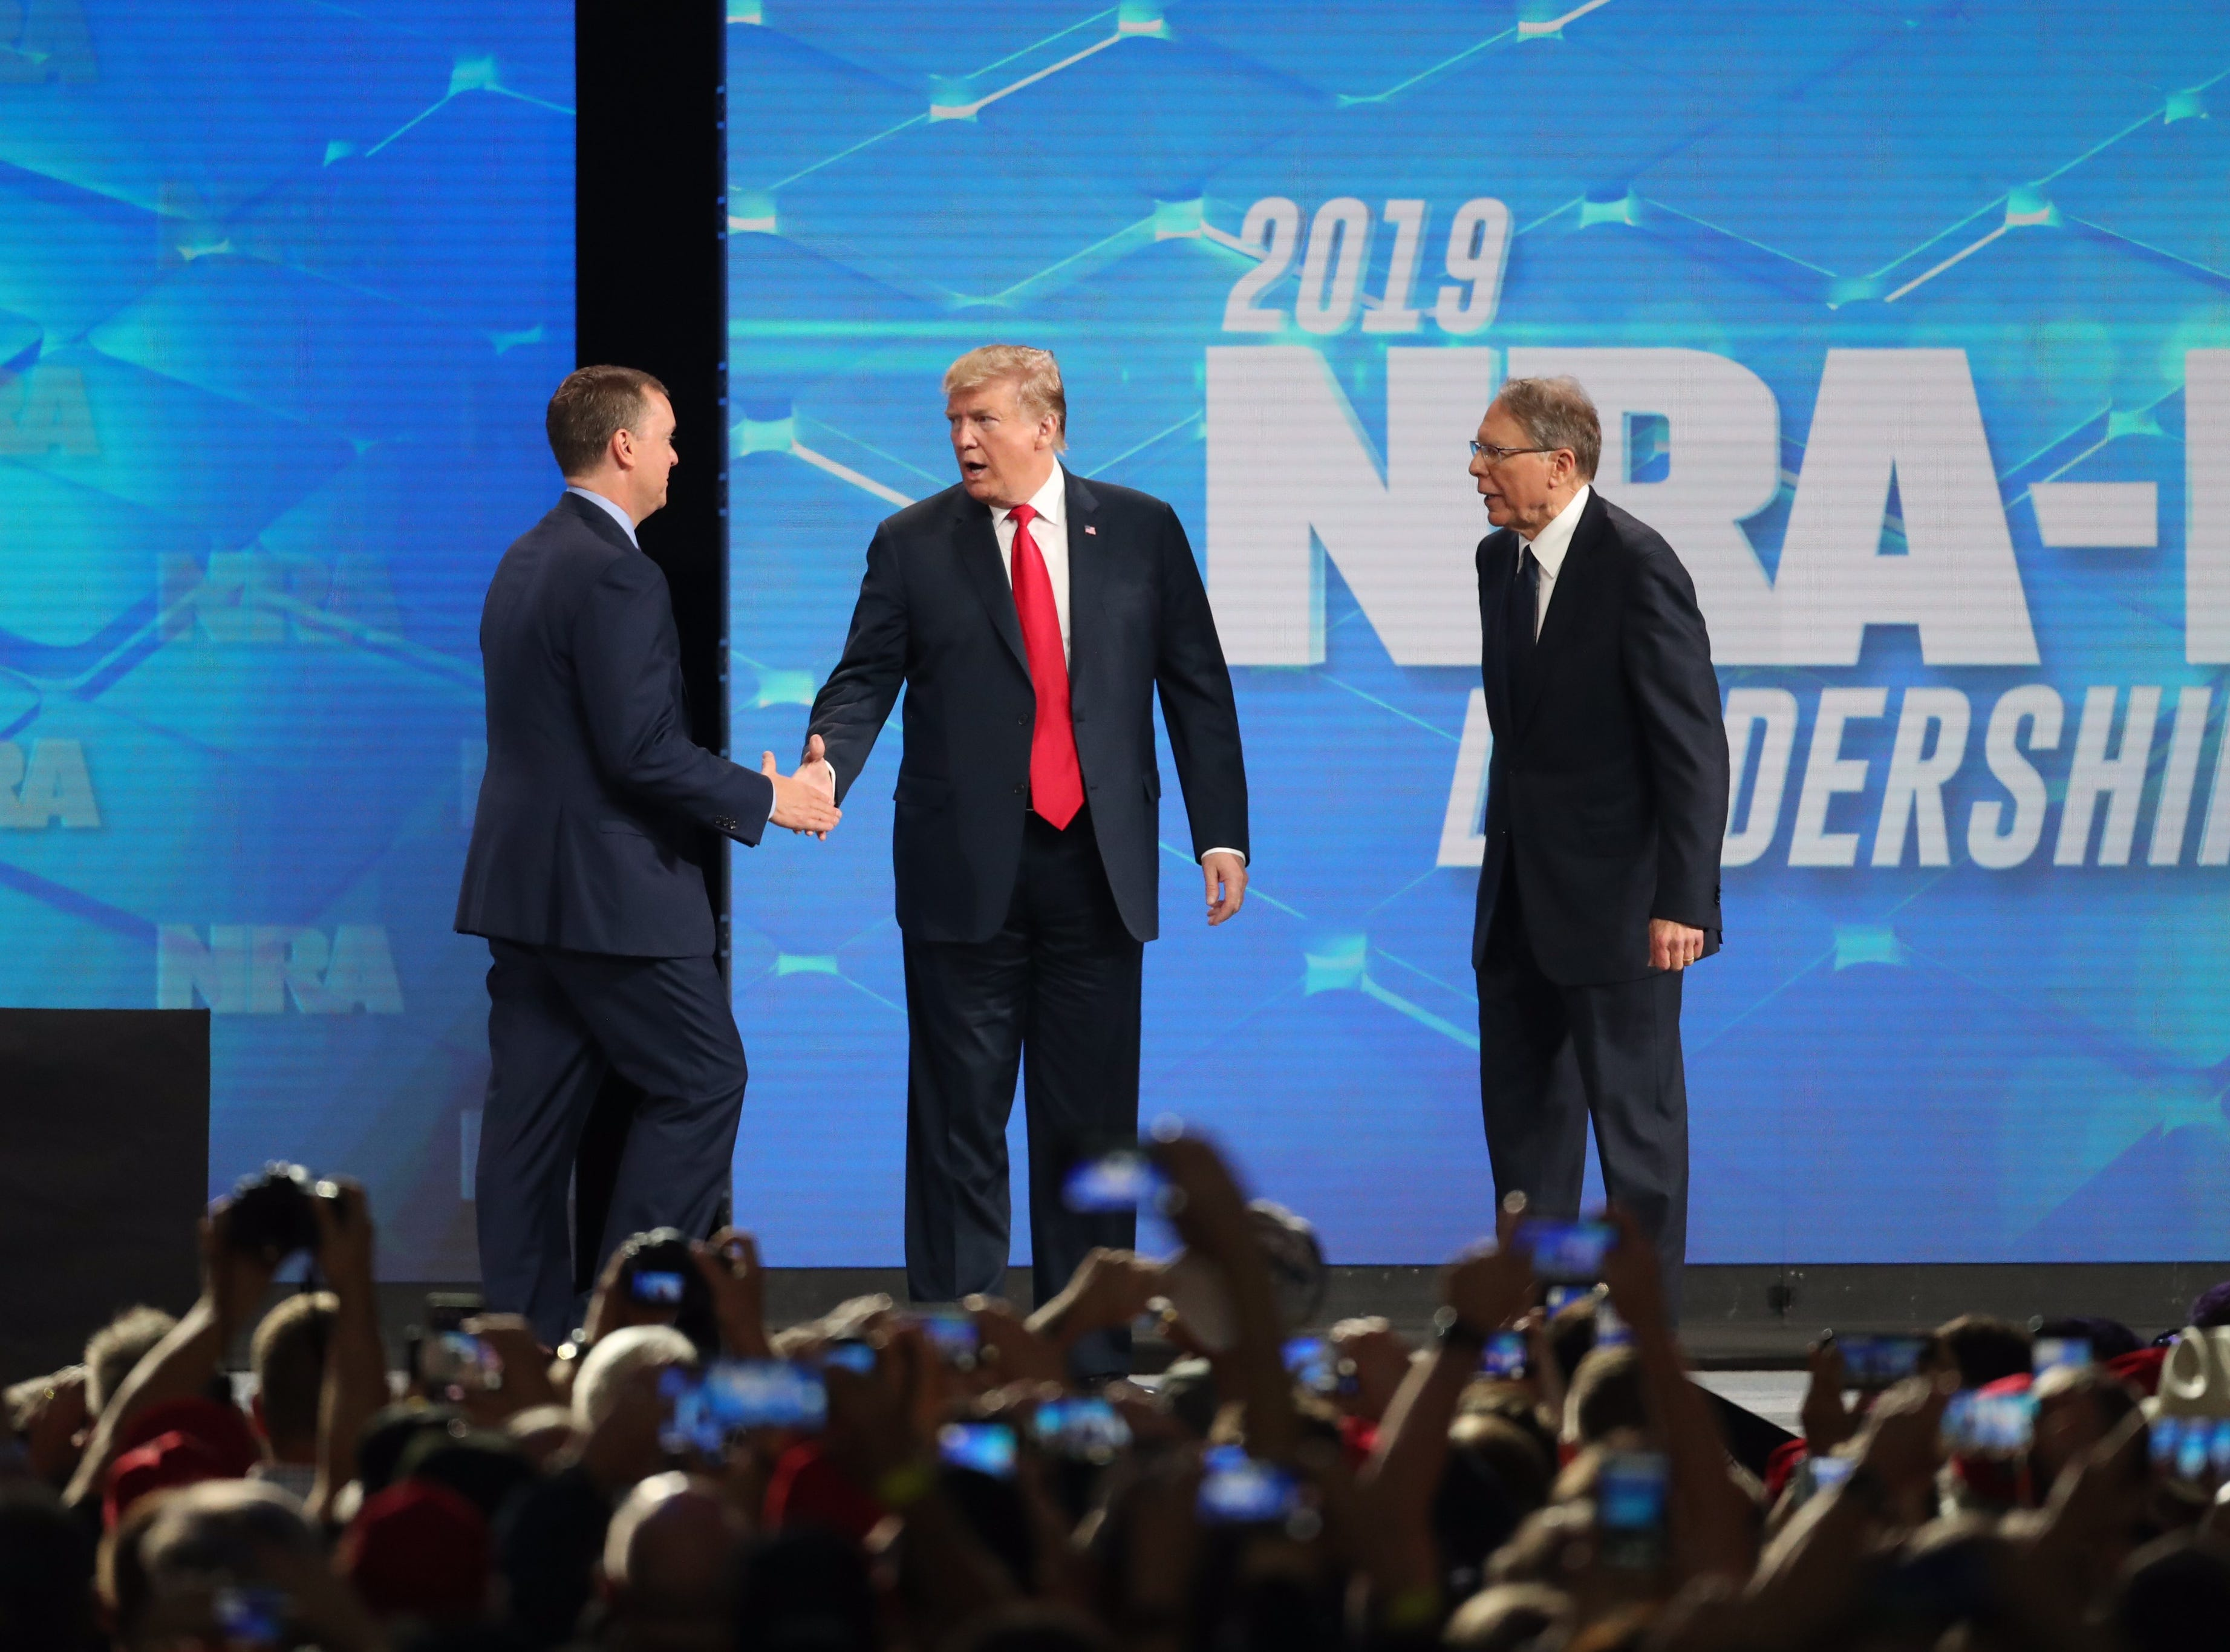 President Donald Trump shakes hands with Chris Cox, Executive Director of the National Rifle AssociationÕs Institute for Legislative Action as Wayne LaPierre, Executive Vice President and Chief Executive Officer of the NRA looks on. President Trump addressed the National Rifle Association Institute for Legislative Action Leadership Forum, Friday, April 26, 2019, at Lucas Oil Stadium in Indianapolis. The forum is part of the 148th NRA annual meetings and exhibits in Indianapolis.